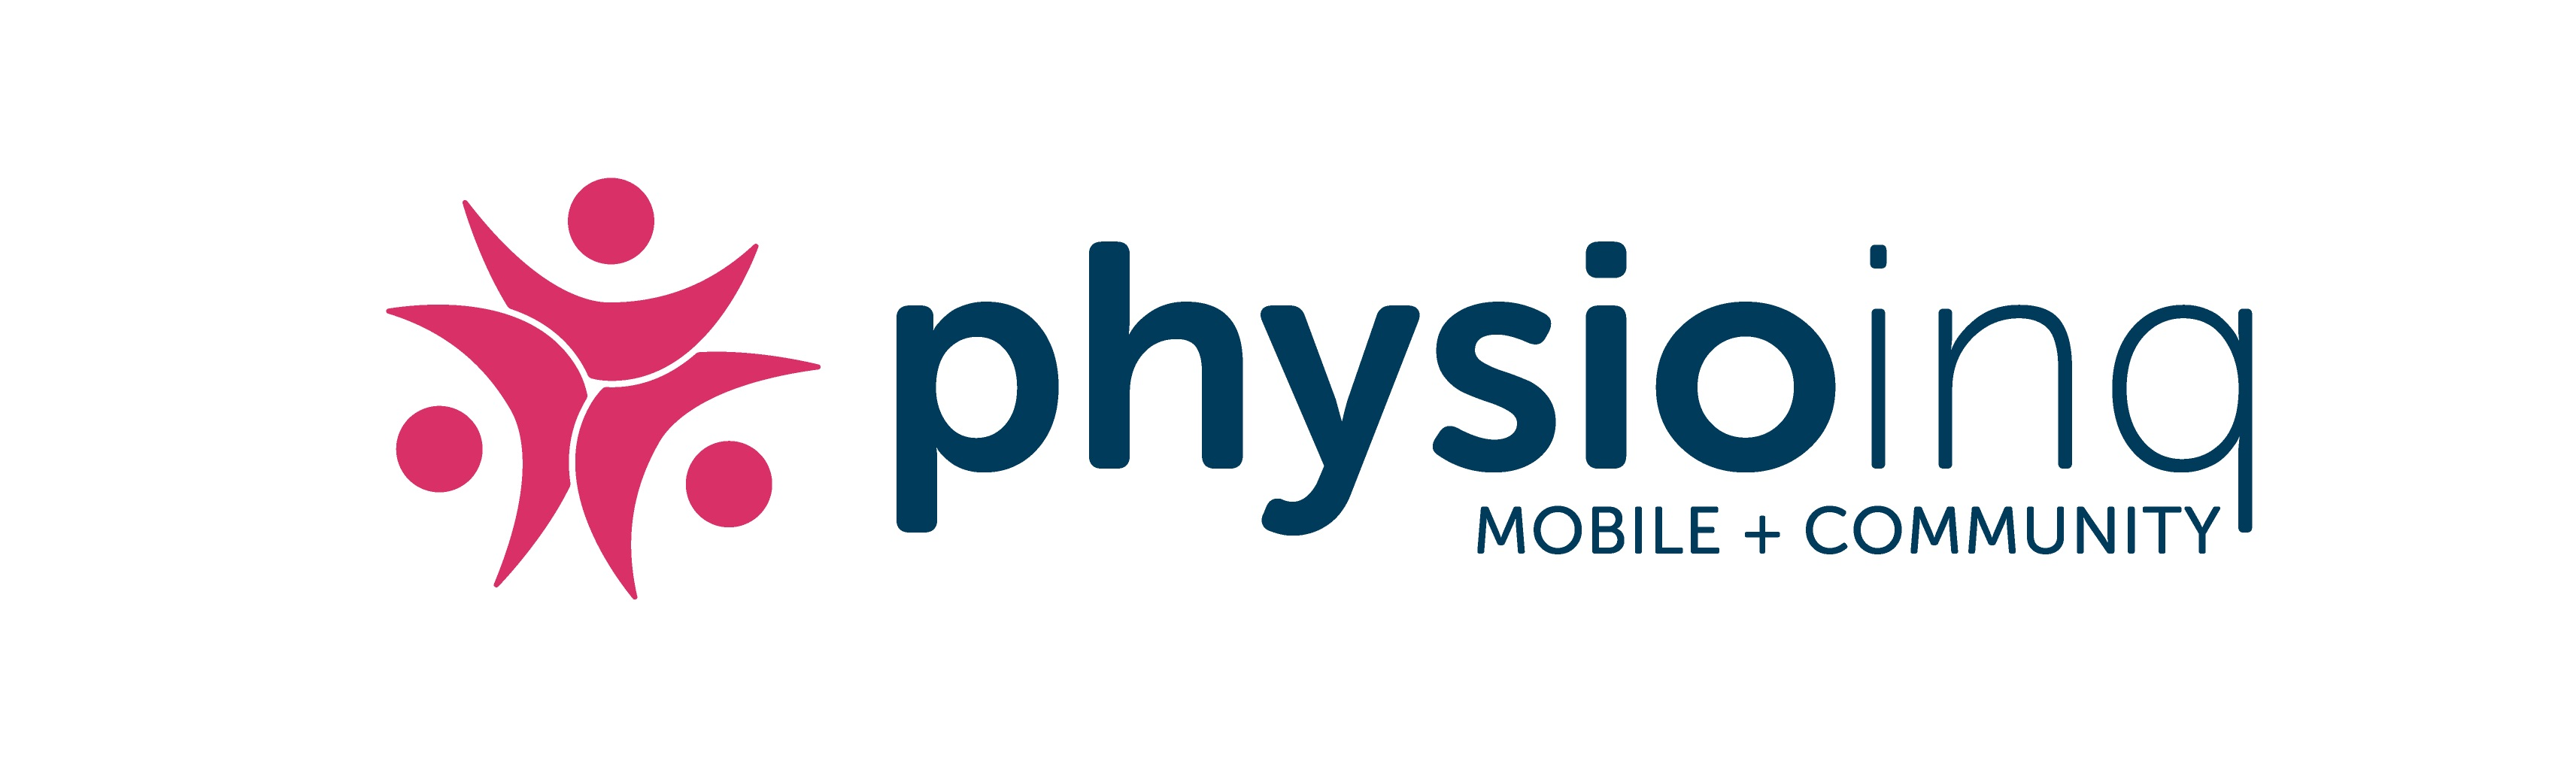 Physio Inq Mobile + Community